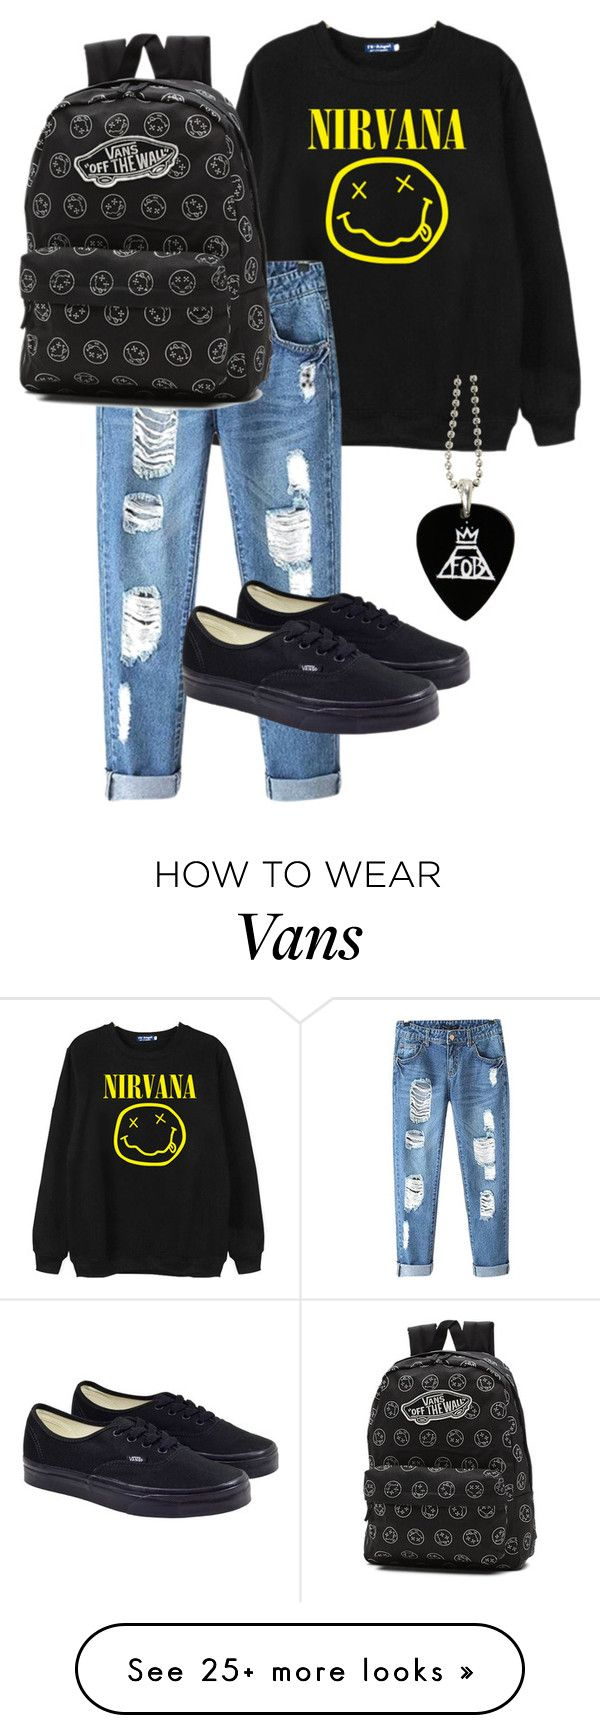 """Nirvana."" by annasoutfit on Polyvore featuring Chicnova Fashion and Vans"